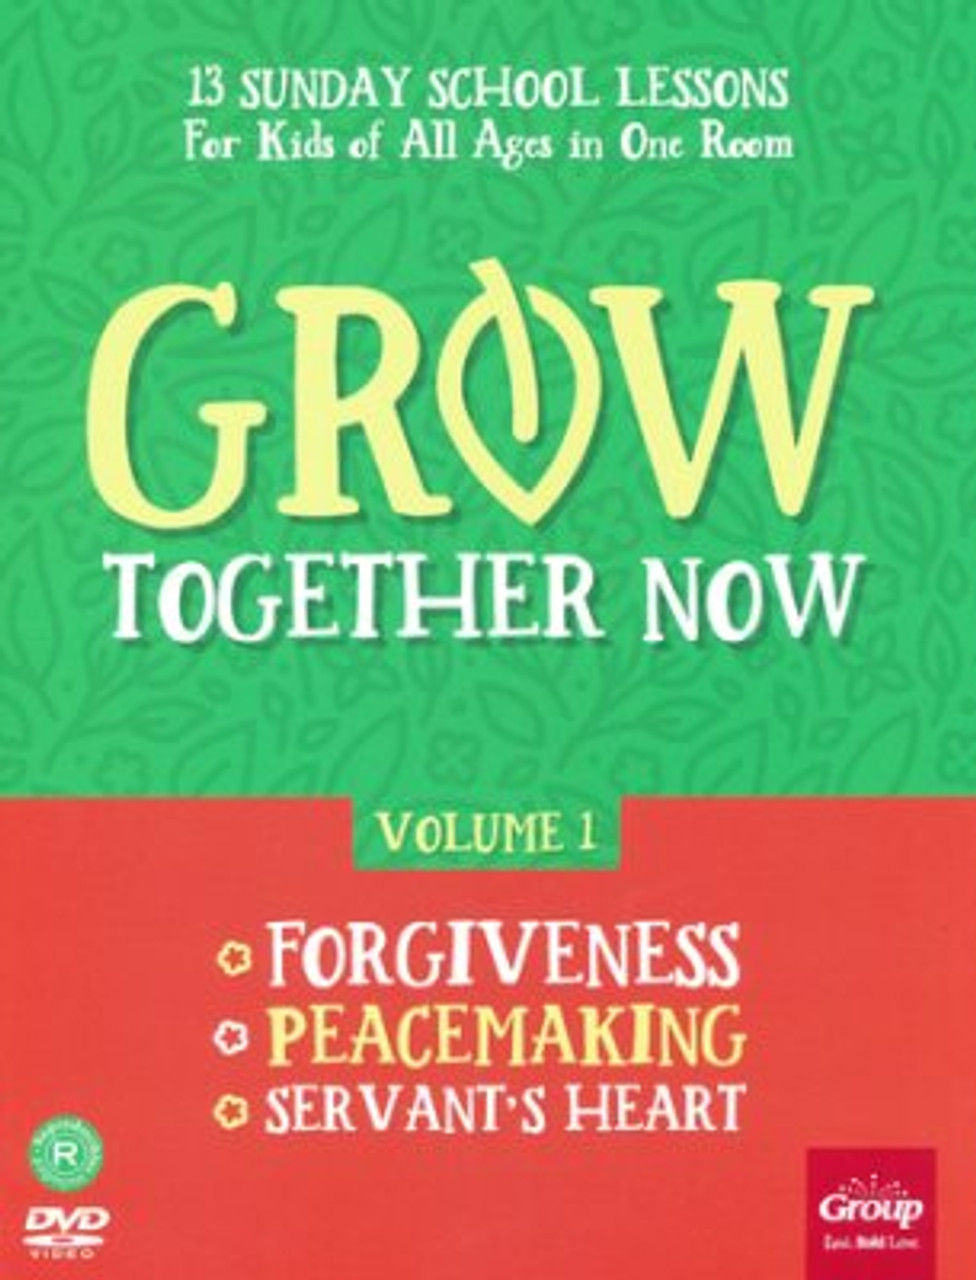 Grow Together Now Volume 1